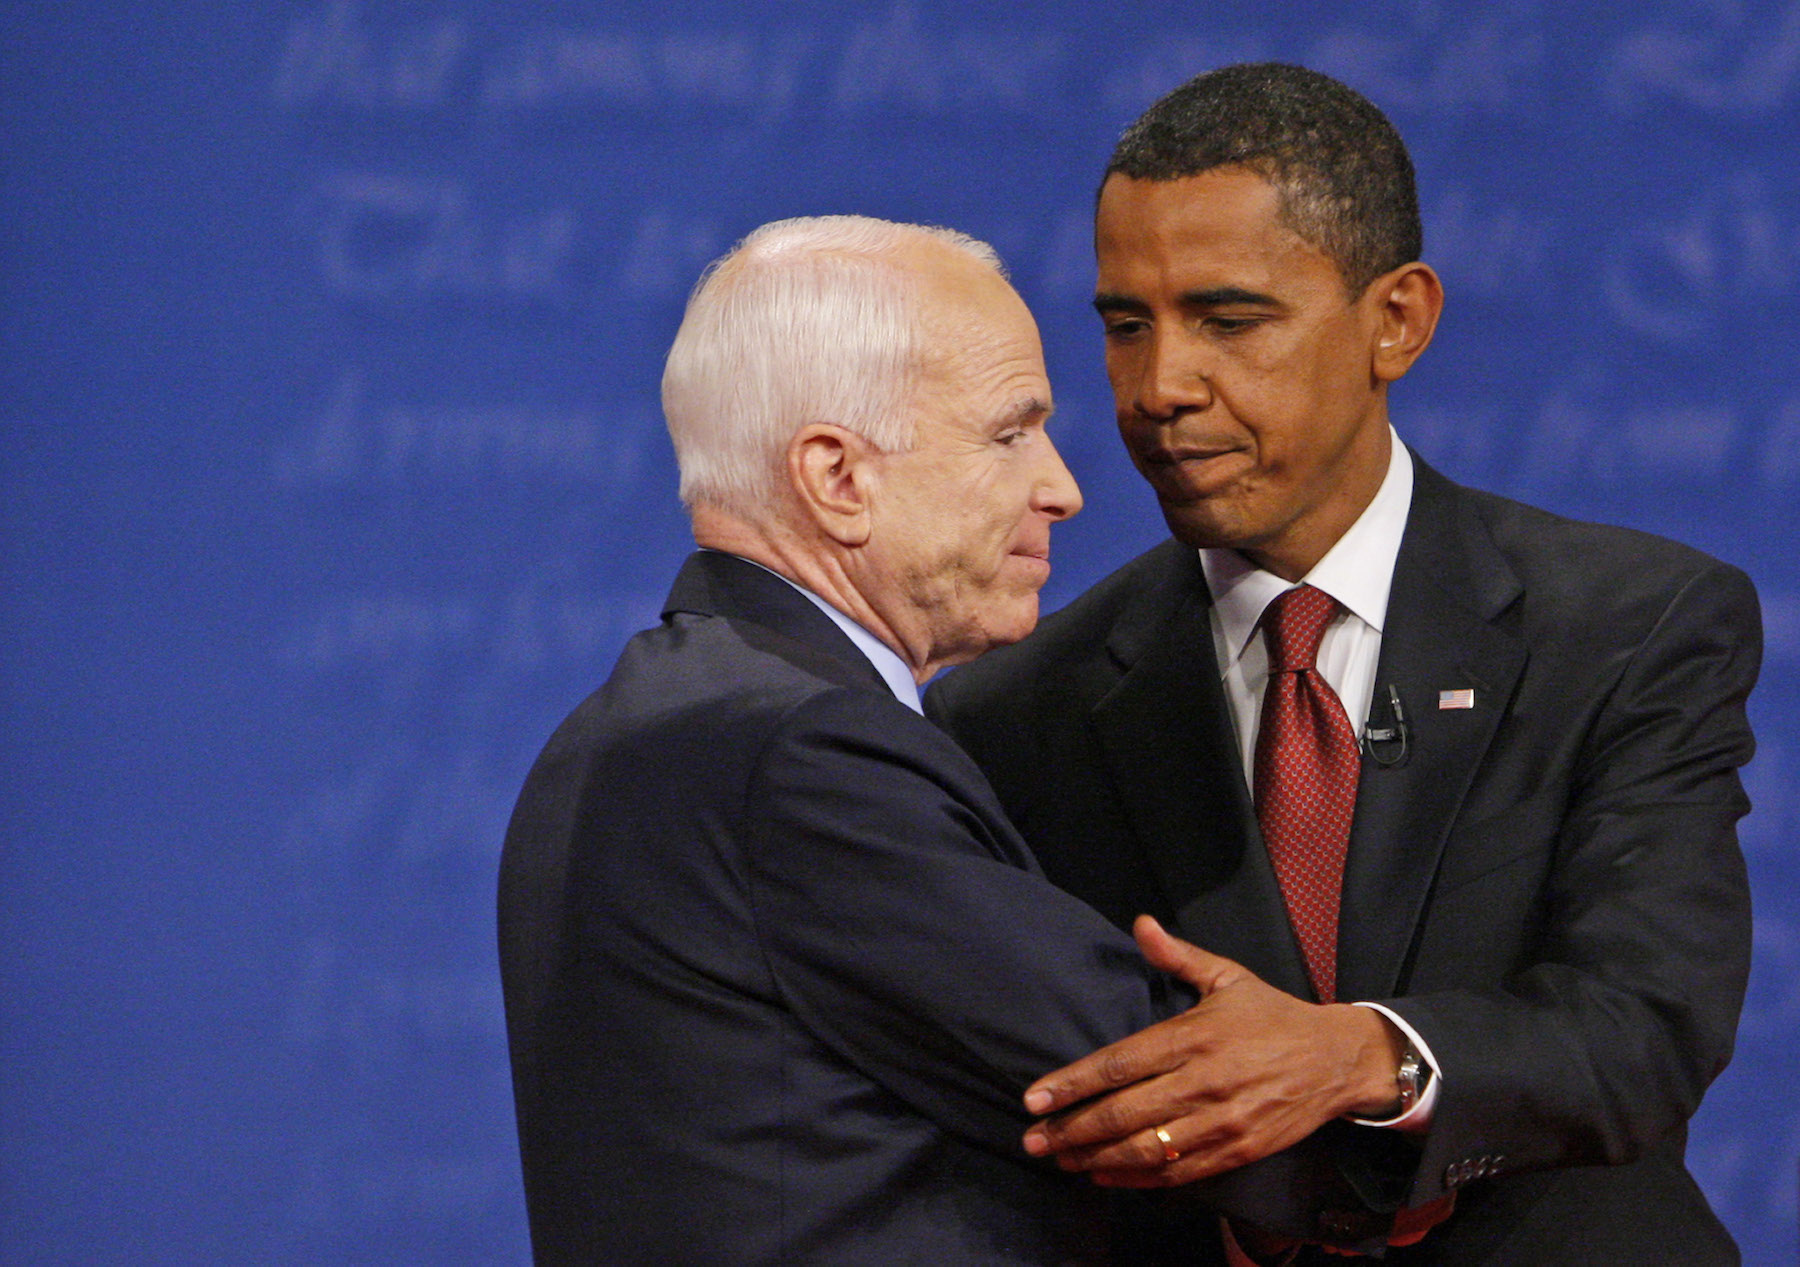 <div class='meta'><div class='origin-logo' data-origin='AP'></div><span class='caption-text' data-credit='AP Photo/Charles Dharapak'>Sen. John McCain and Sen. Barack Obama shake hands at the conclusion of the presidential debate on Friday, Sept. 26, 2008.</span></div>